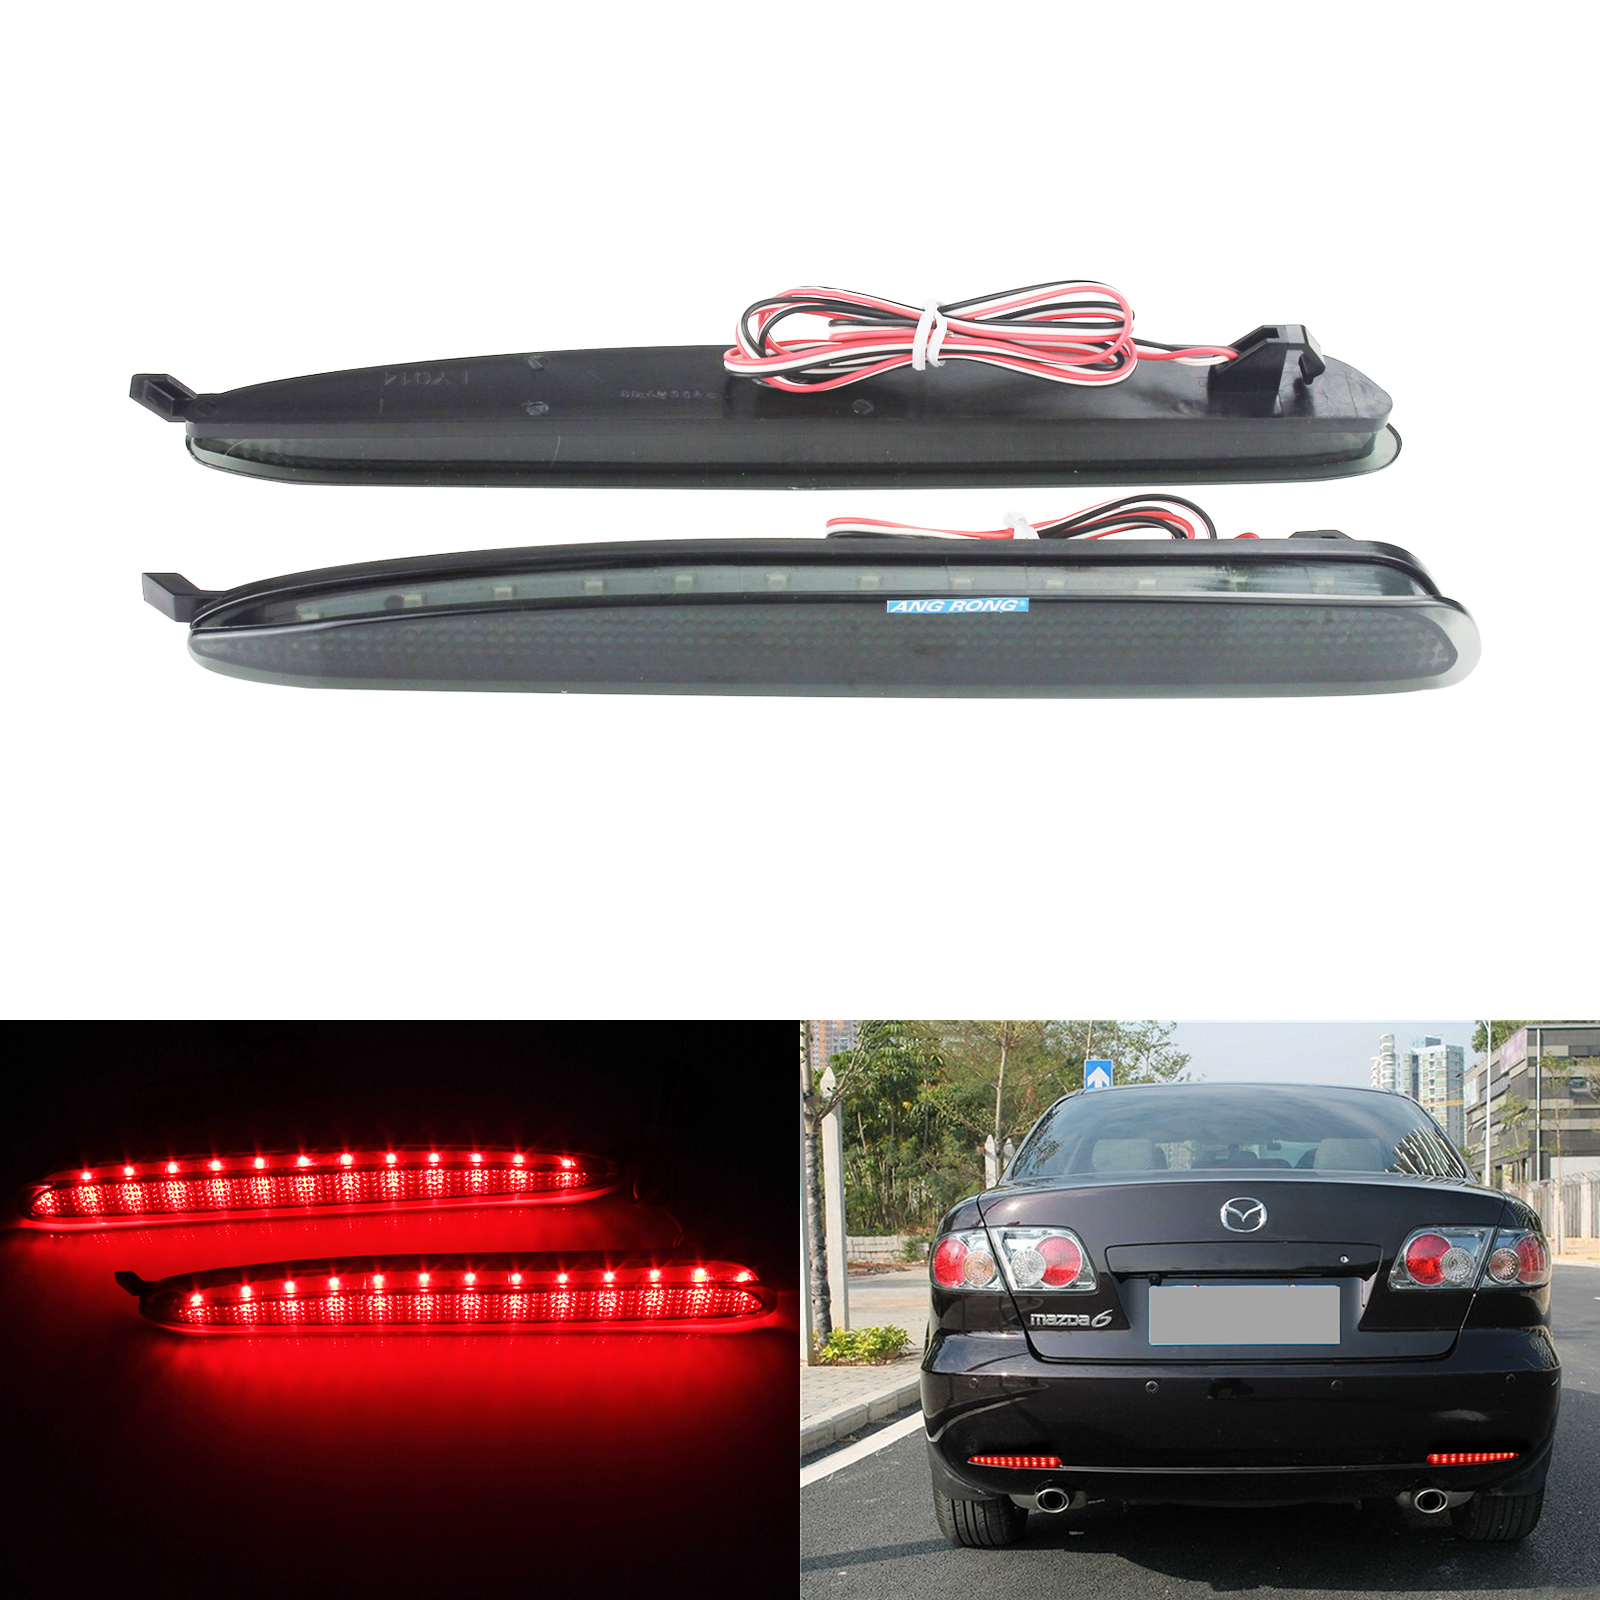 ANGRONG 2x Red 24 <font><b>LED</b></font> Rear Bumper Reflector <font><b>Light</b></font> 2003-2008 For Mazda6 Atenza GG Mazdaspeed6 image